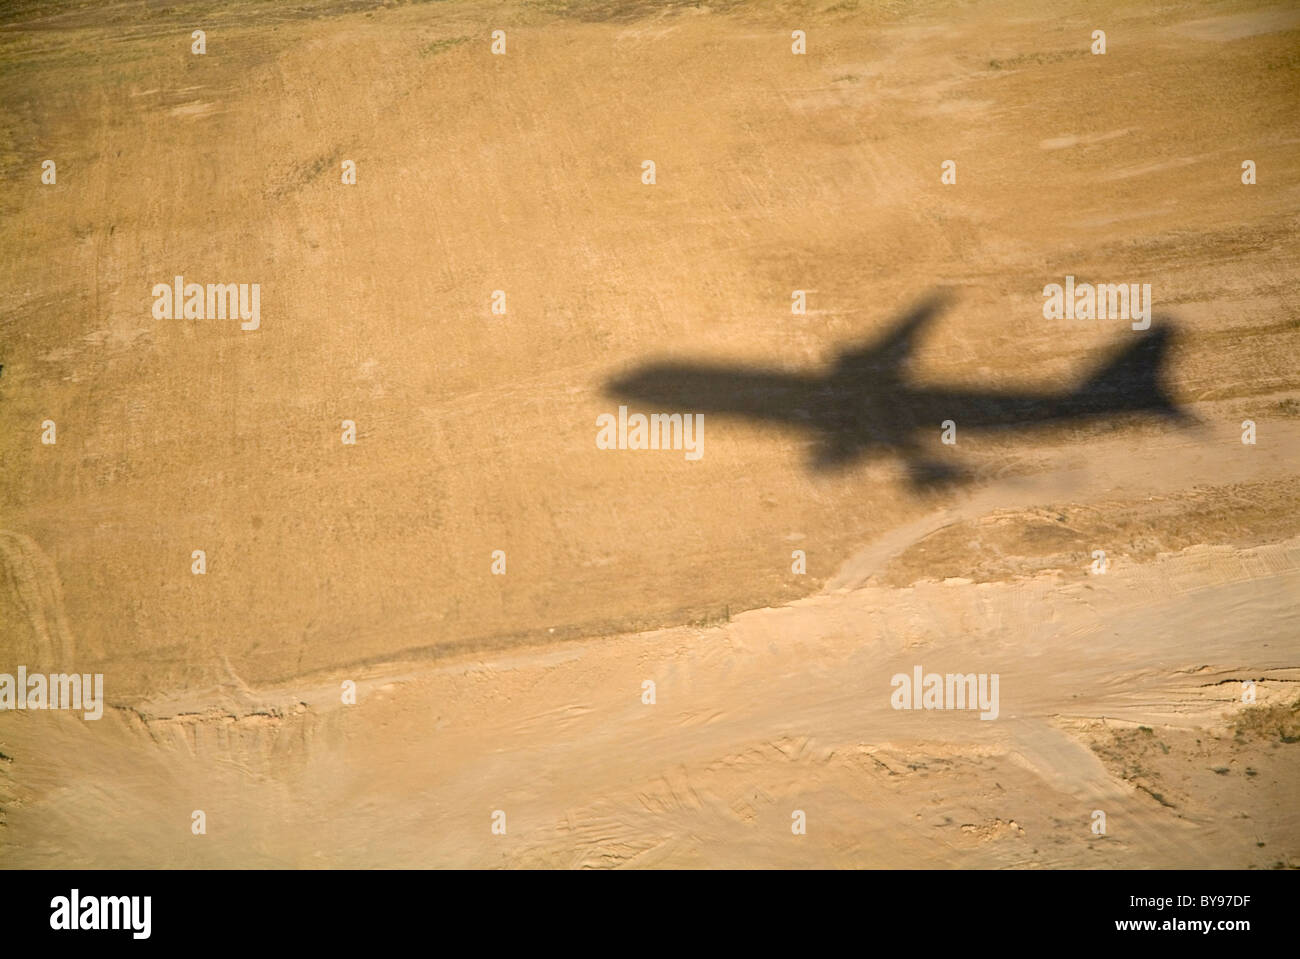 Shadow of a flying airplane taking off - Stock Image